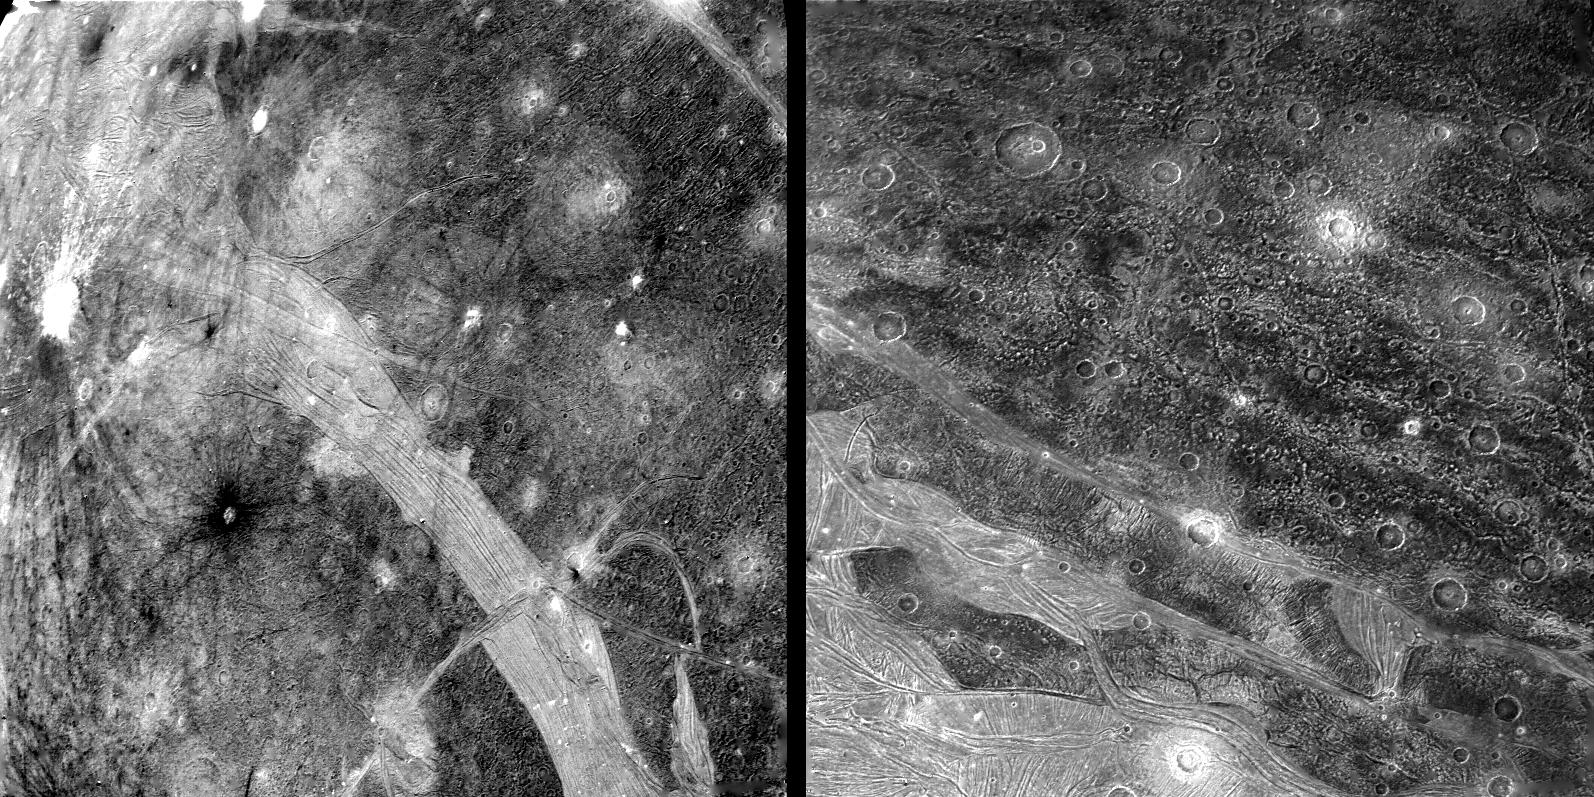 Voyager 2 views of the surface of the Jovian moon Ganymede